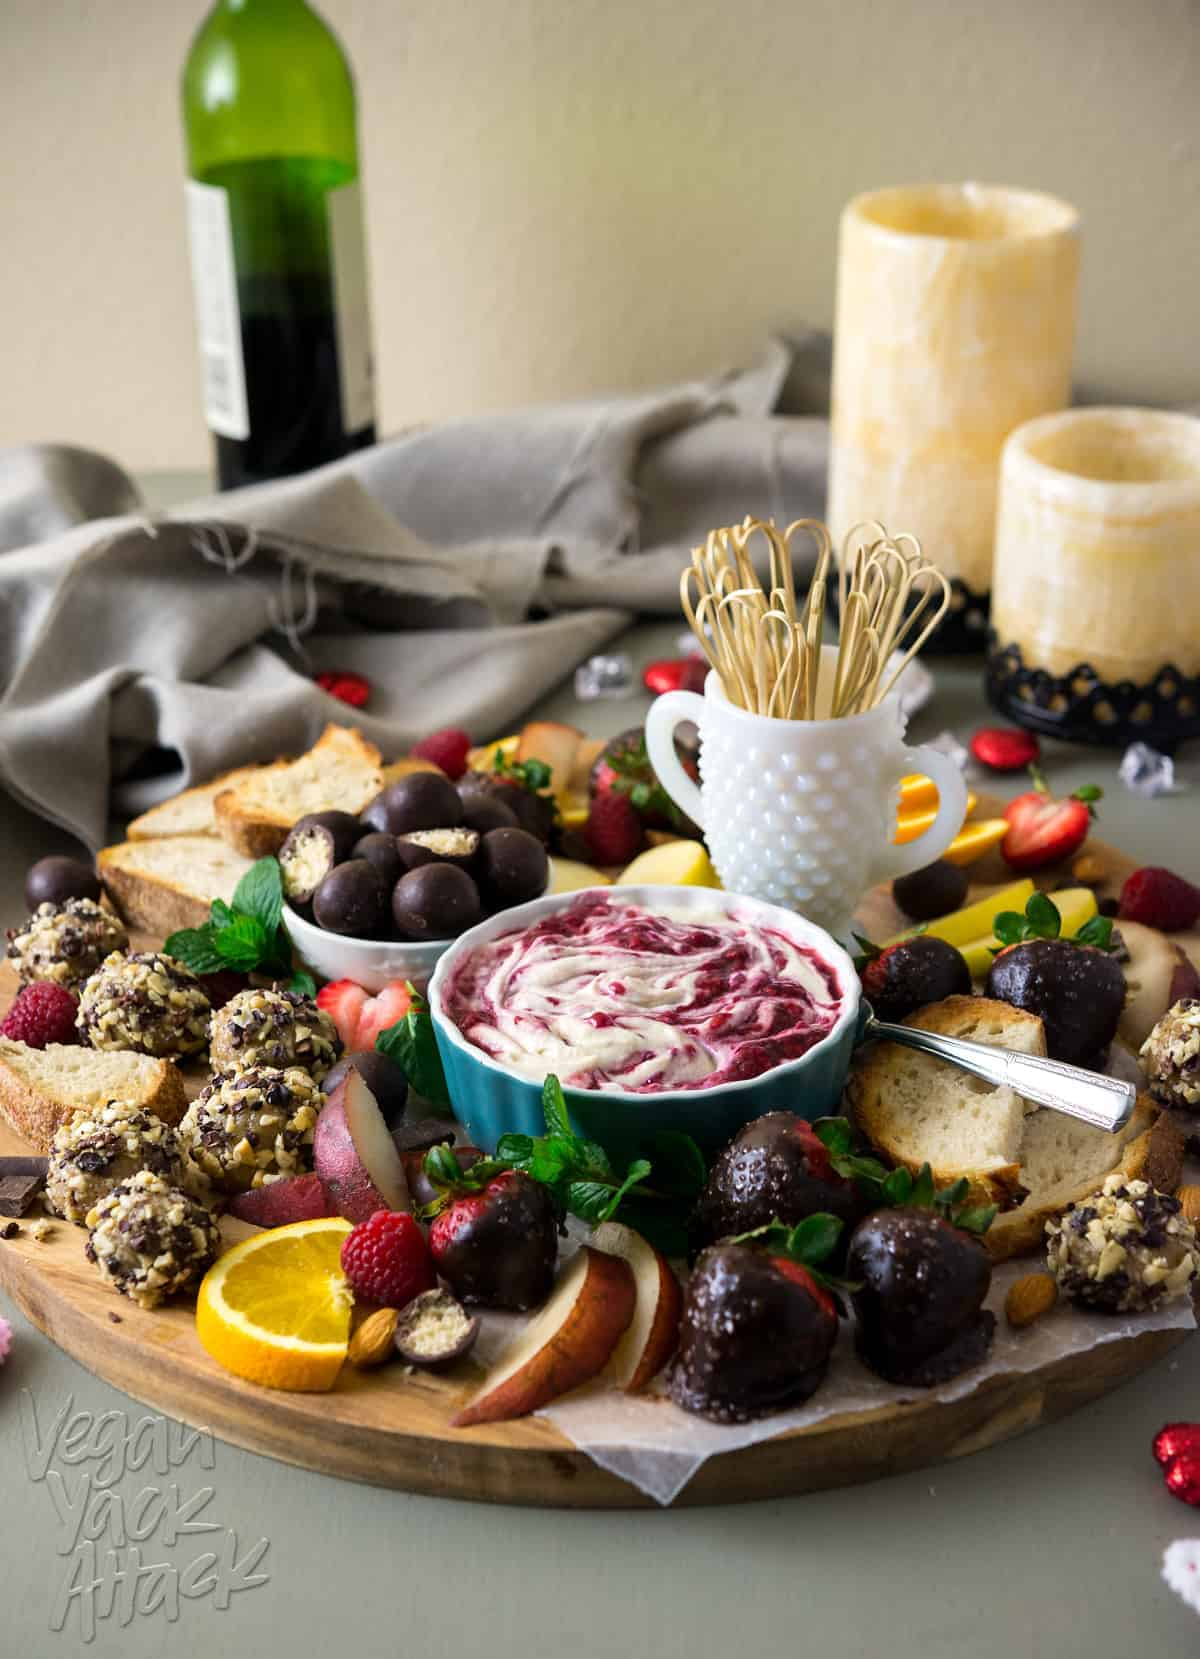 Image of elaborate dessert platter, featuring vegan sweets, raspberry merlot creme fraiche, with wine and candles in the background